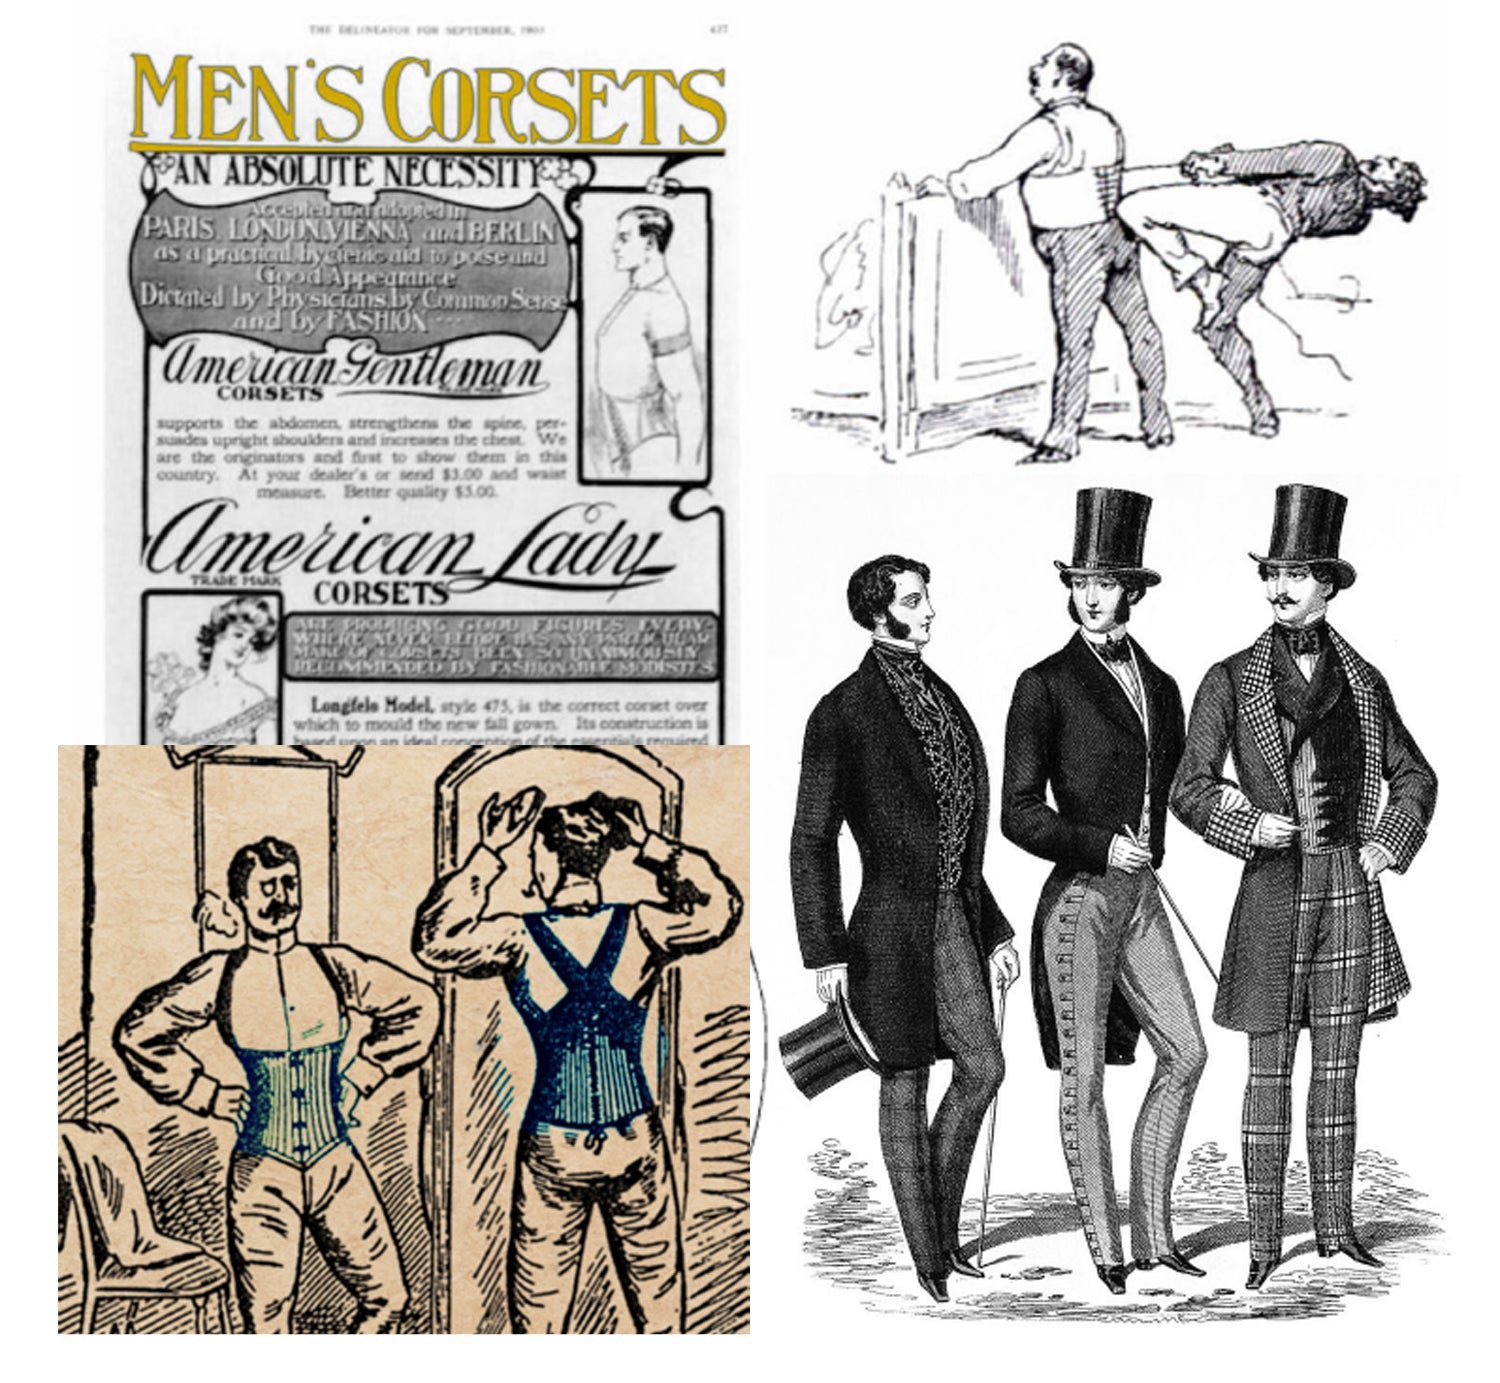 The History of Corsets in Pictures